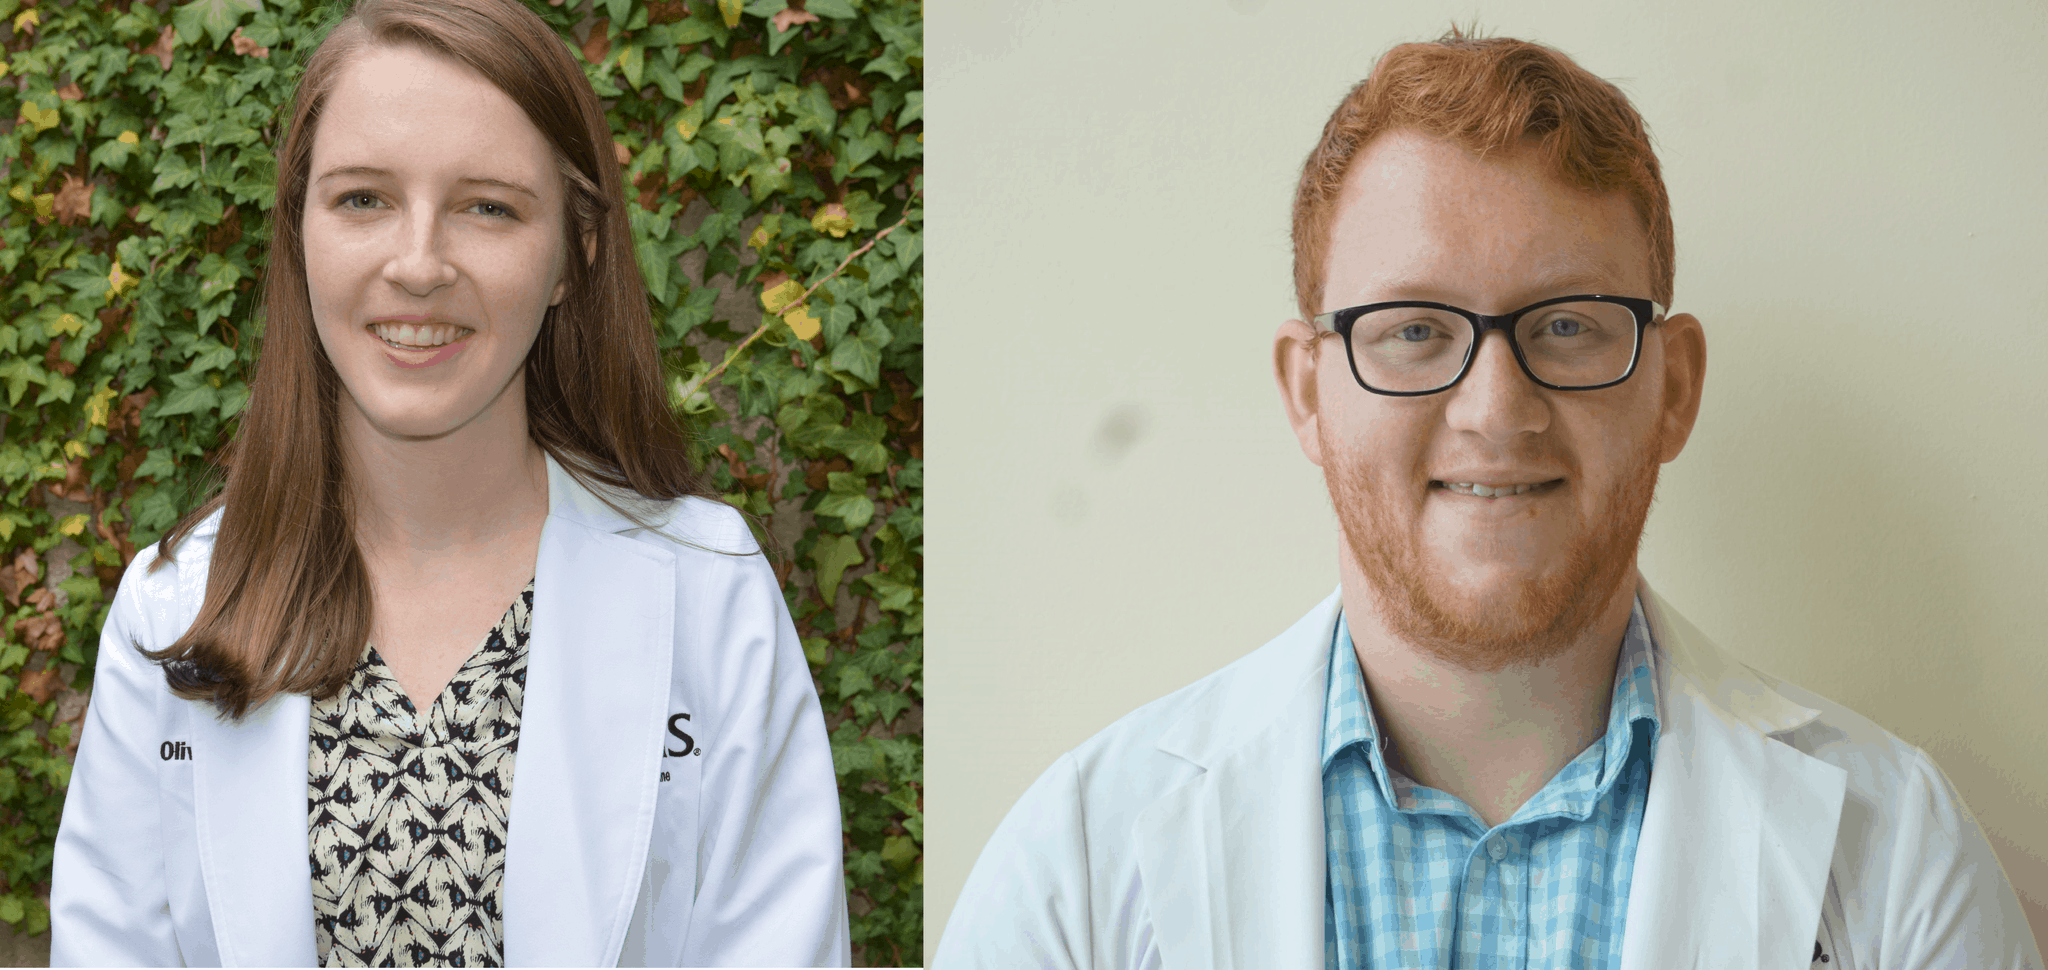 Brasher, of North Little Rock, and Cullum, of Bono, are this year's recipients of the Arkansas Blue Cross and Blue Shield Primary Care Scholarship.